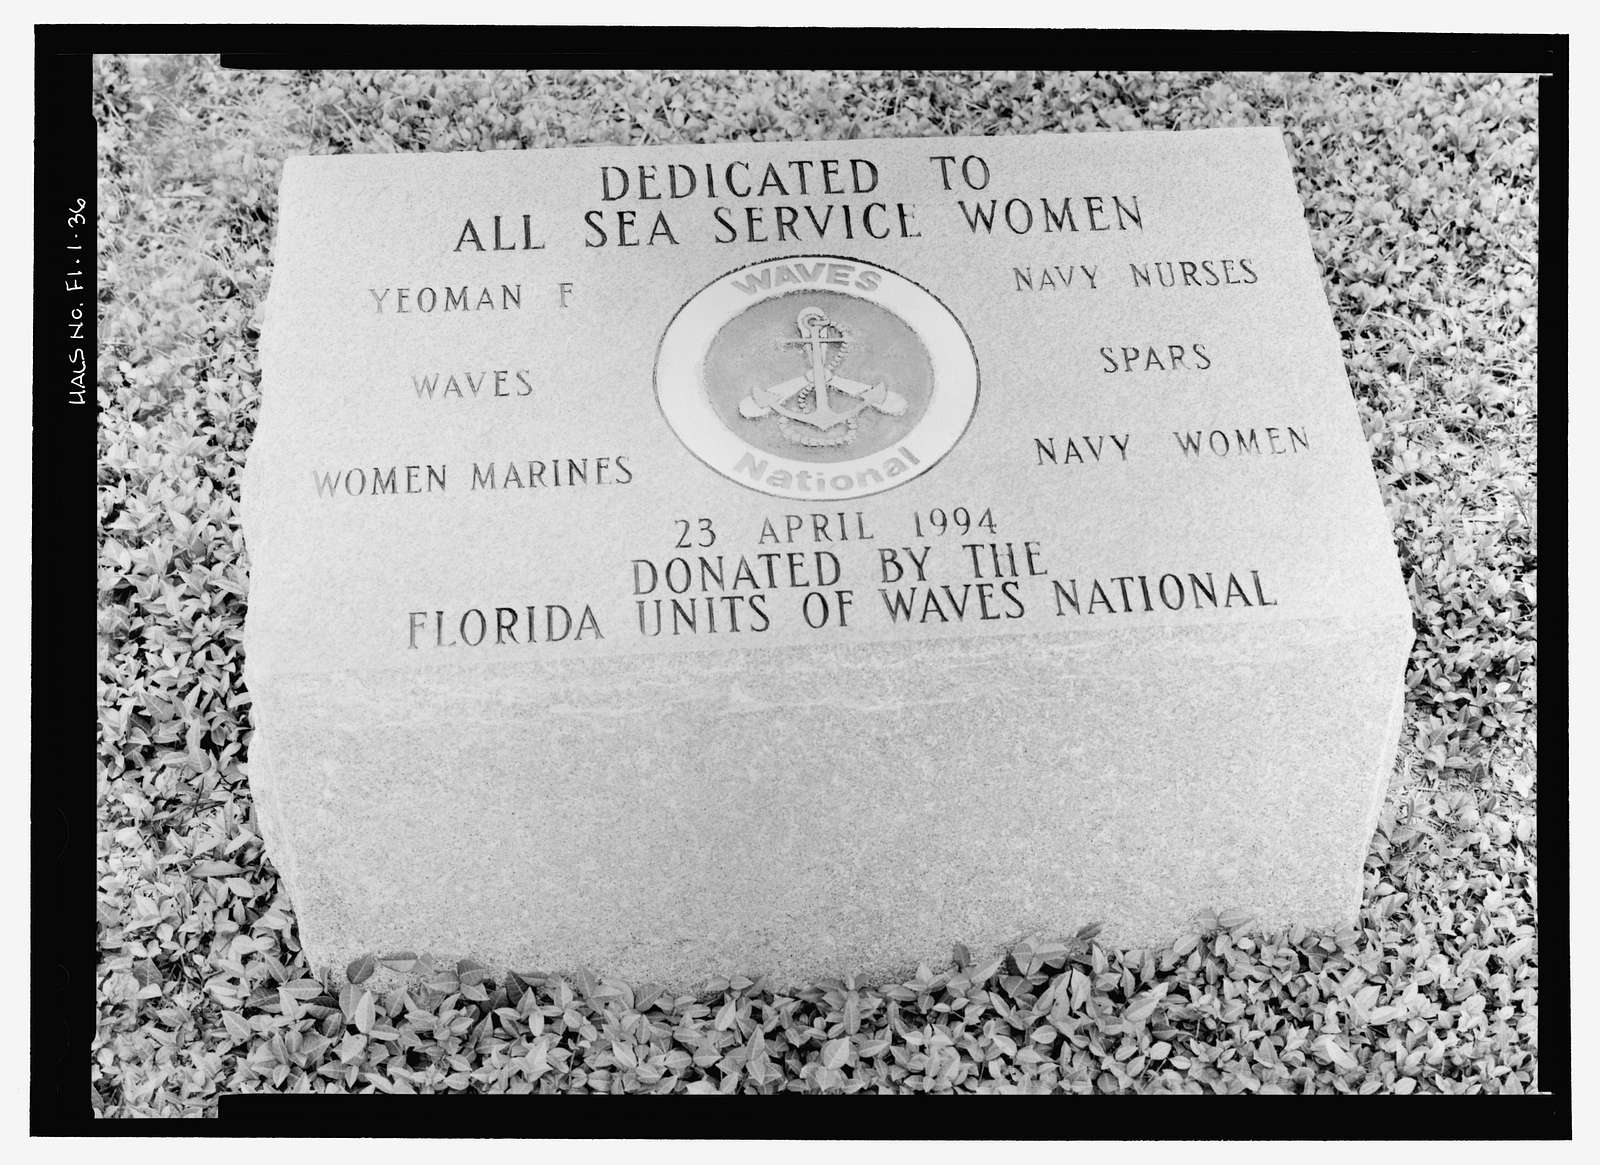 Barrancas National Cemetery, Naval Air Station, 80 Hovey Road, Pensacola, Escambia County, FL